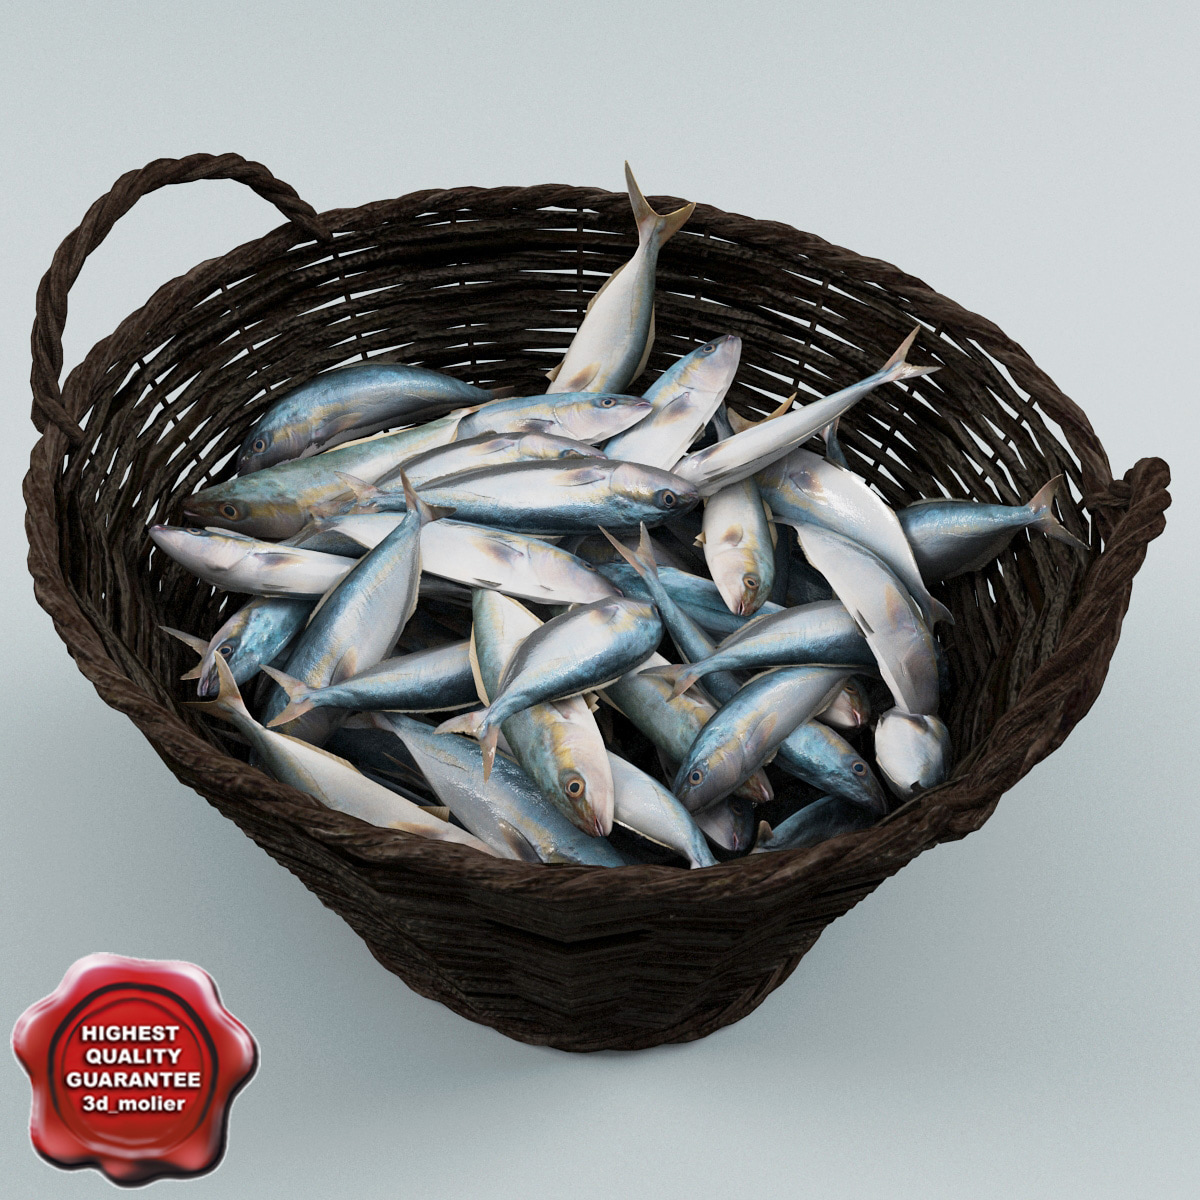 Fish_in_Wicker_Basket_00.jpg